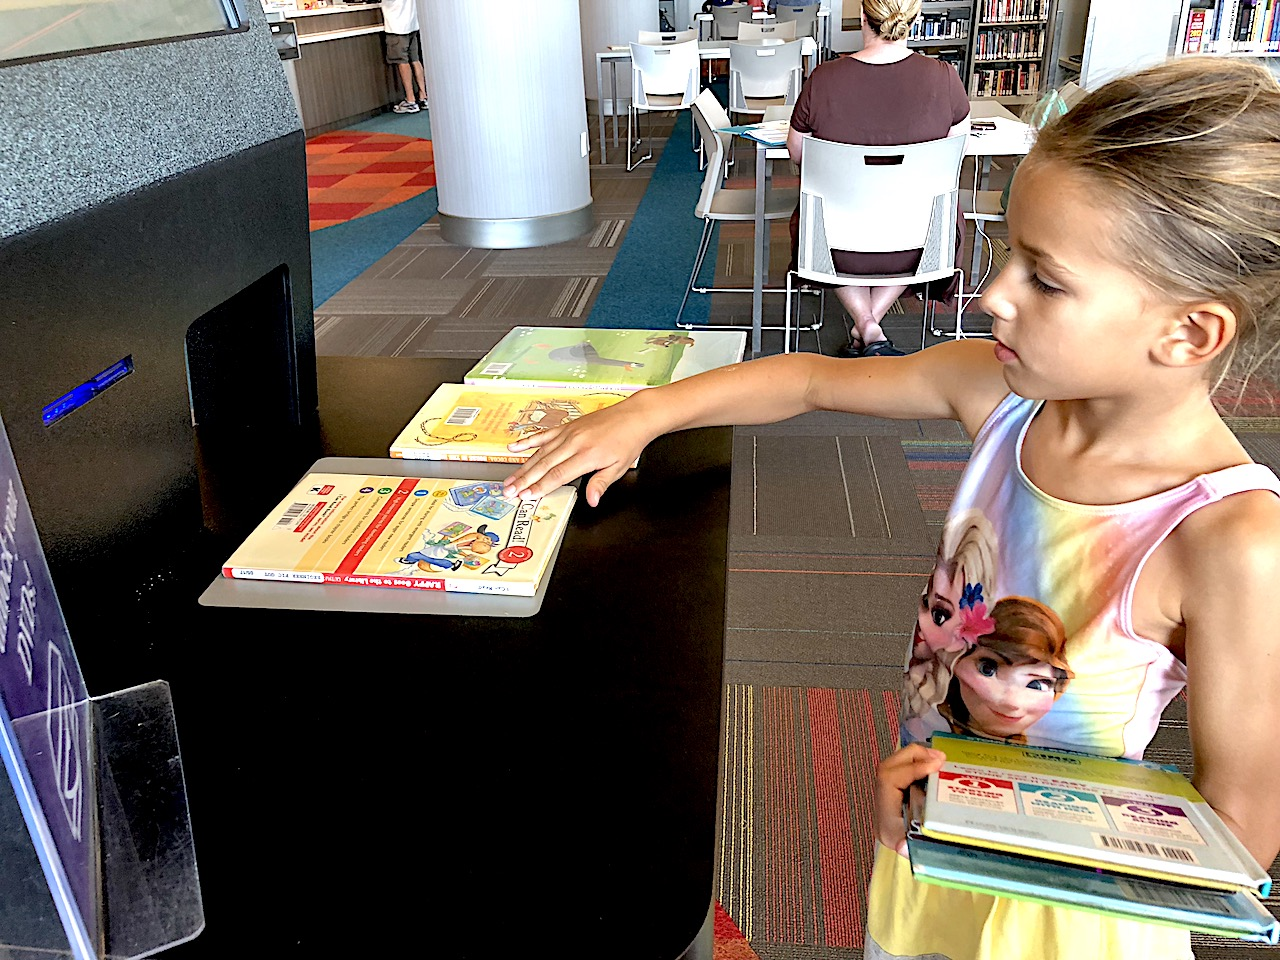 Take your child to the library to give her a love for reading